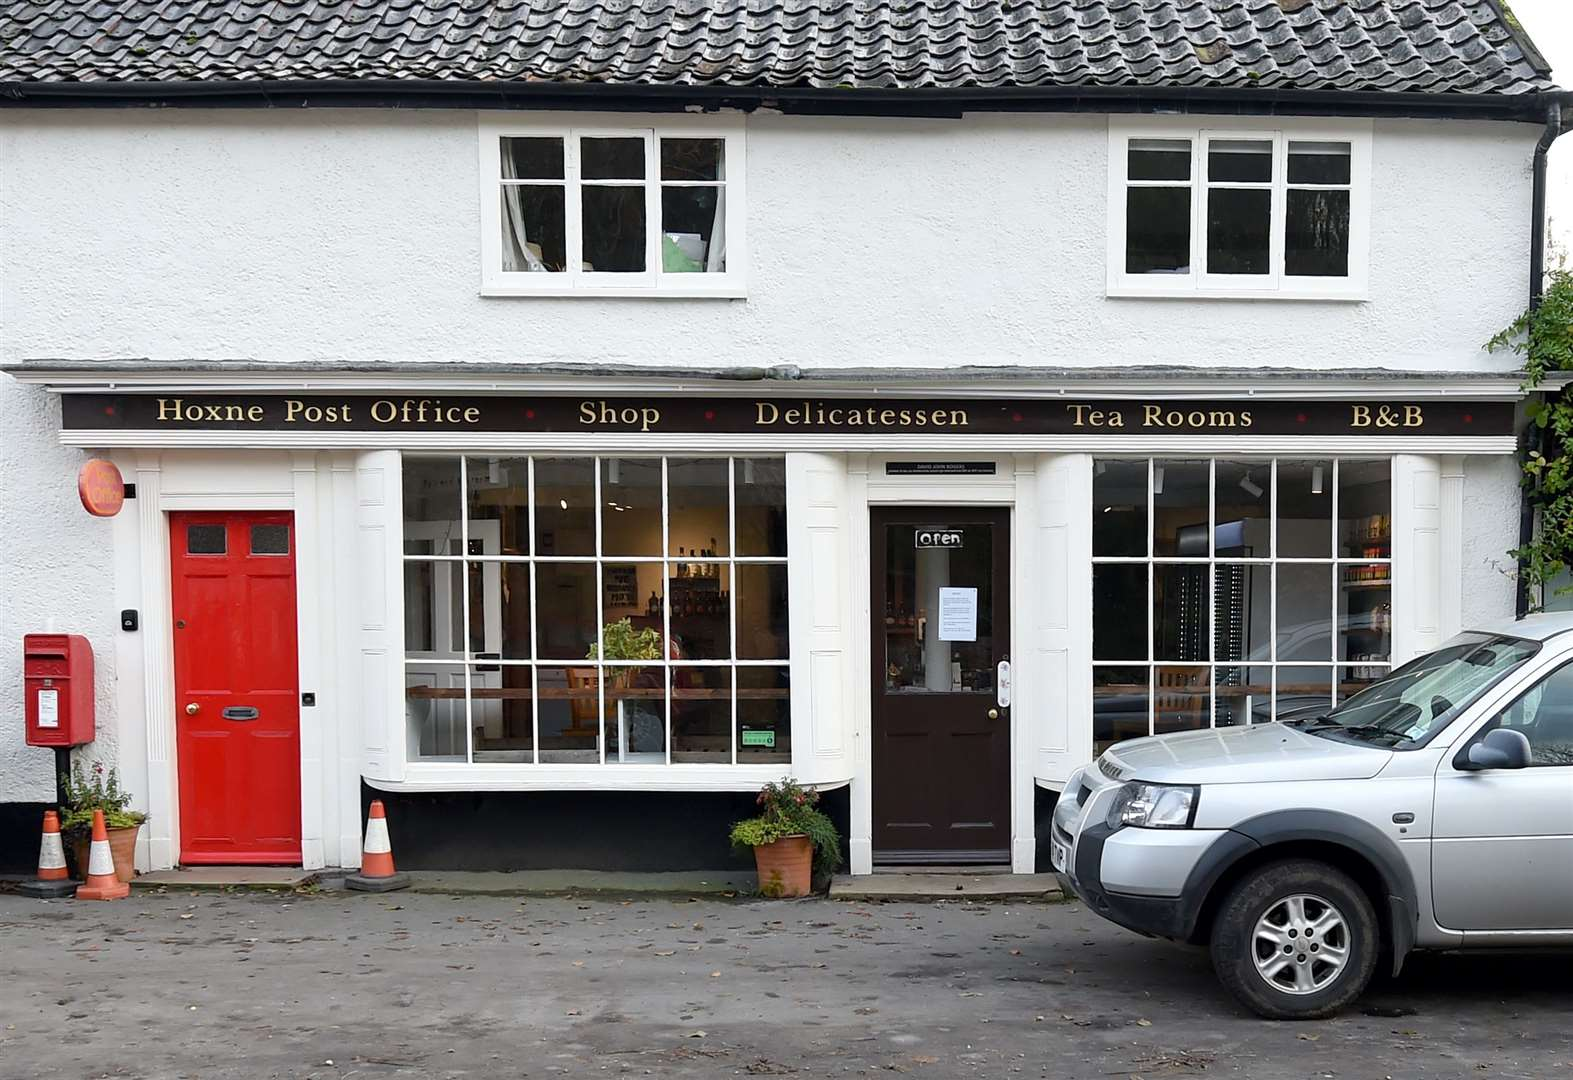 We haven't made a go of it, say village post office owners